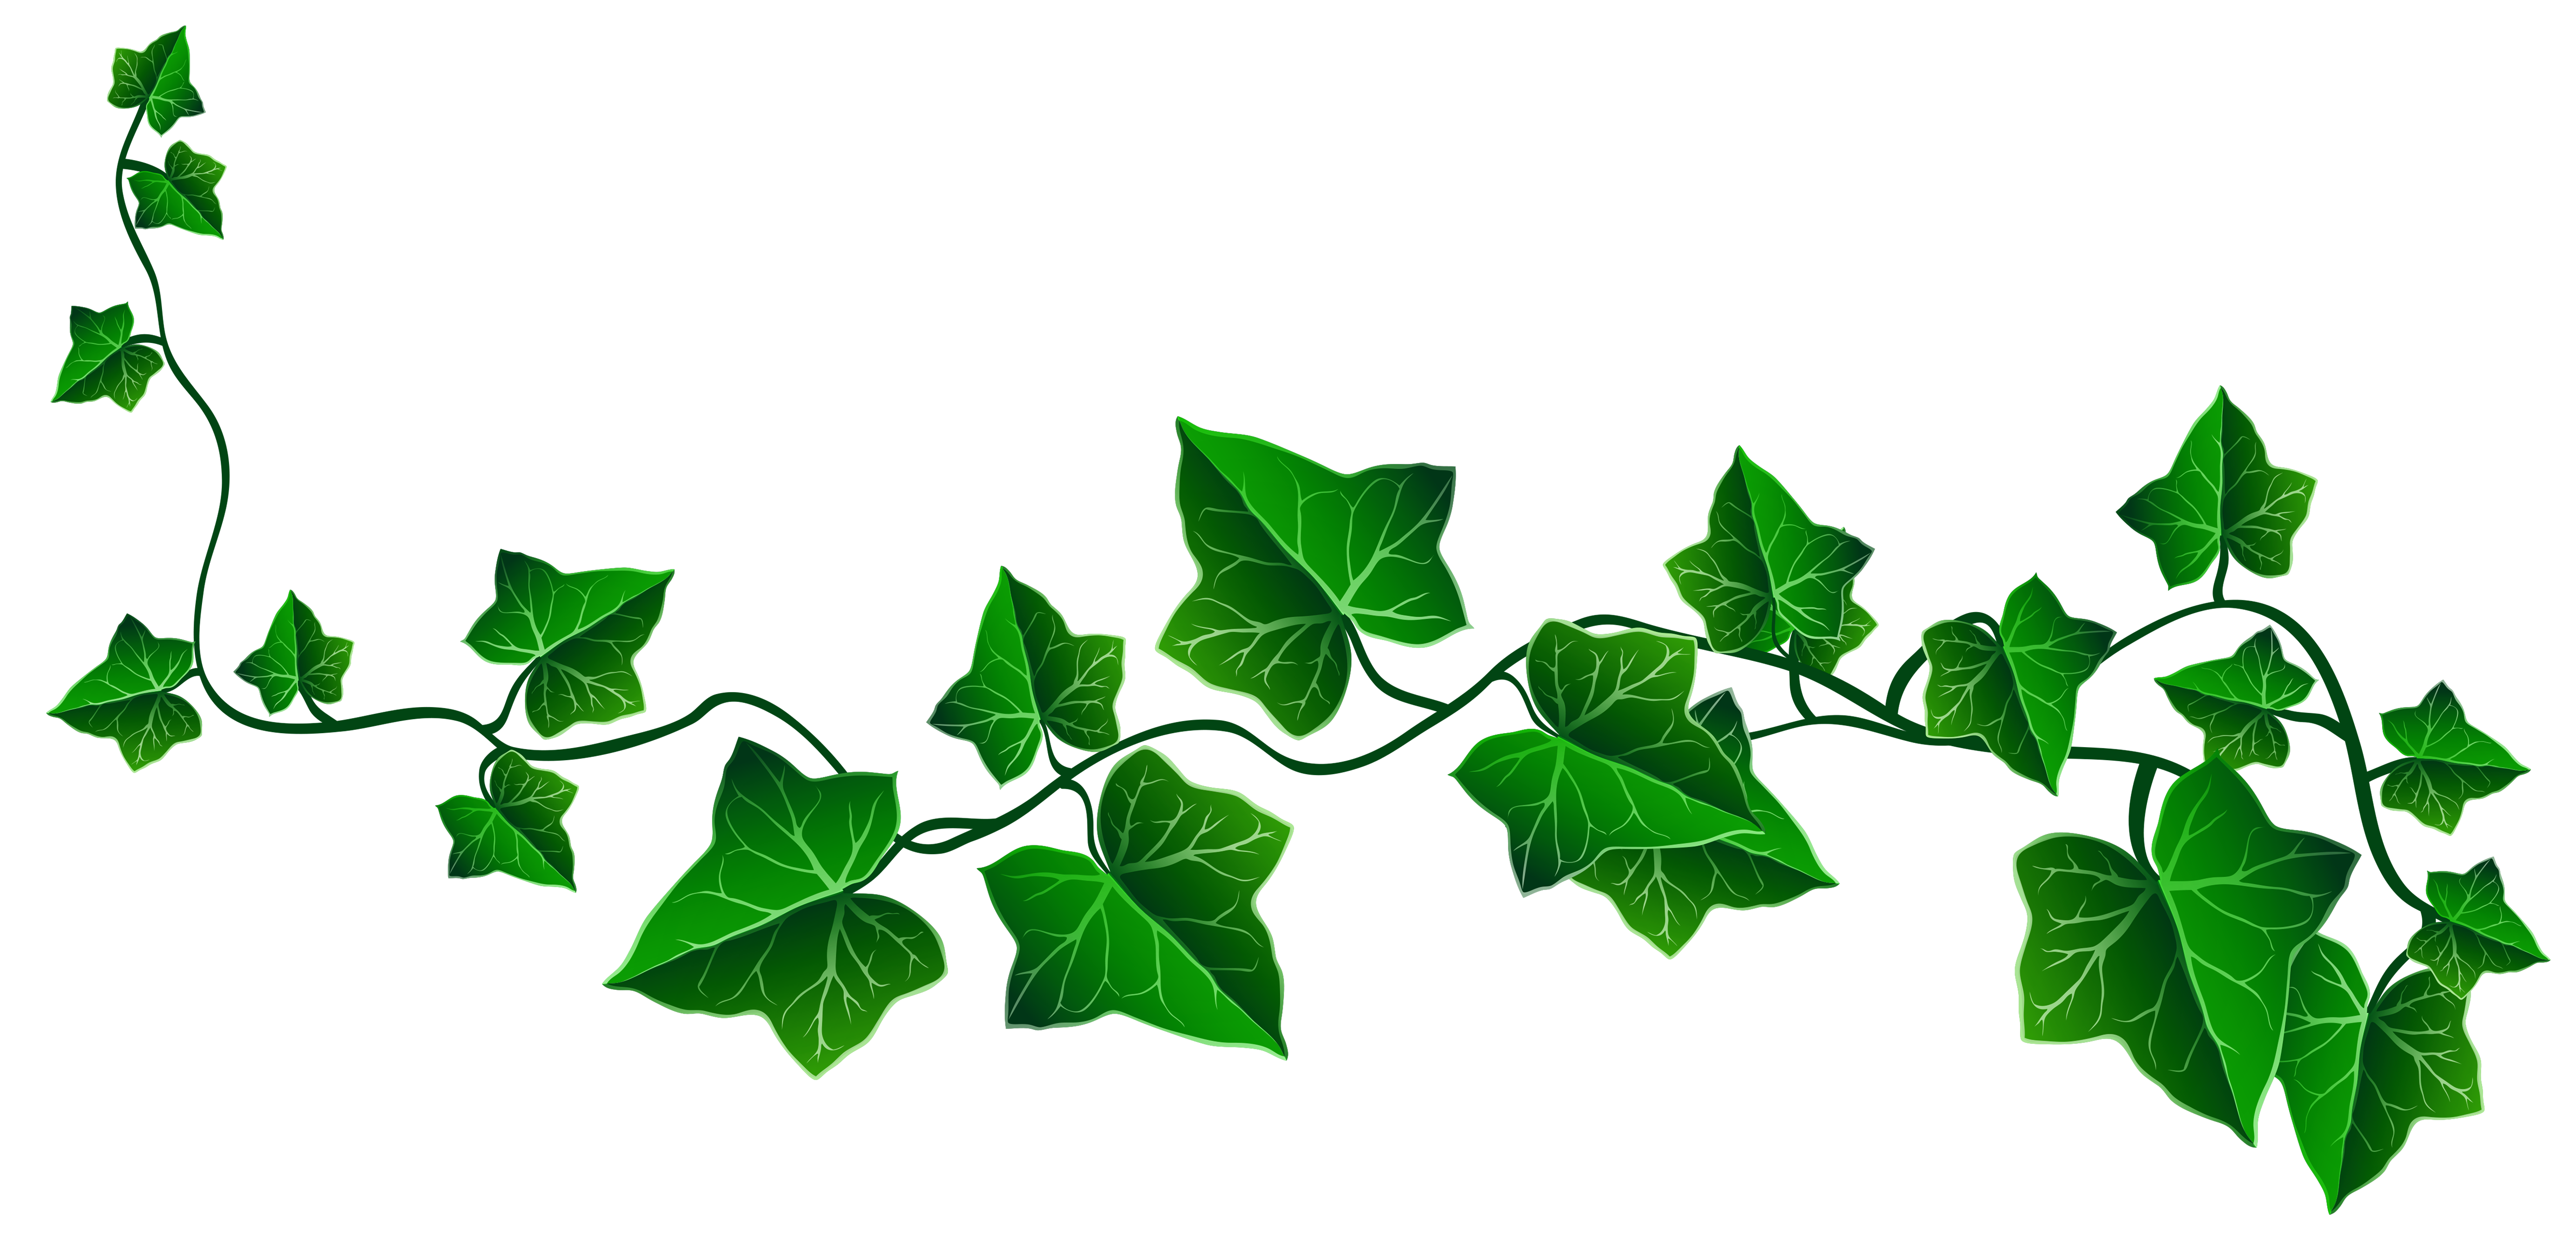 Free ivy cliparts download. Vine clipart